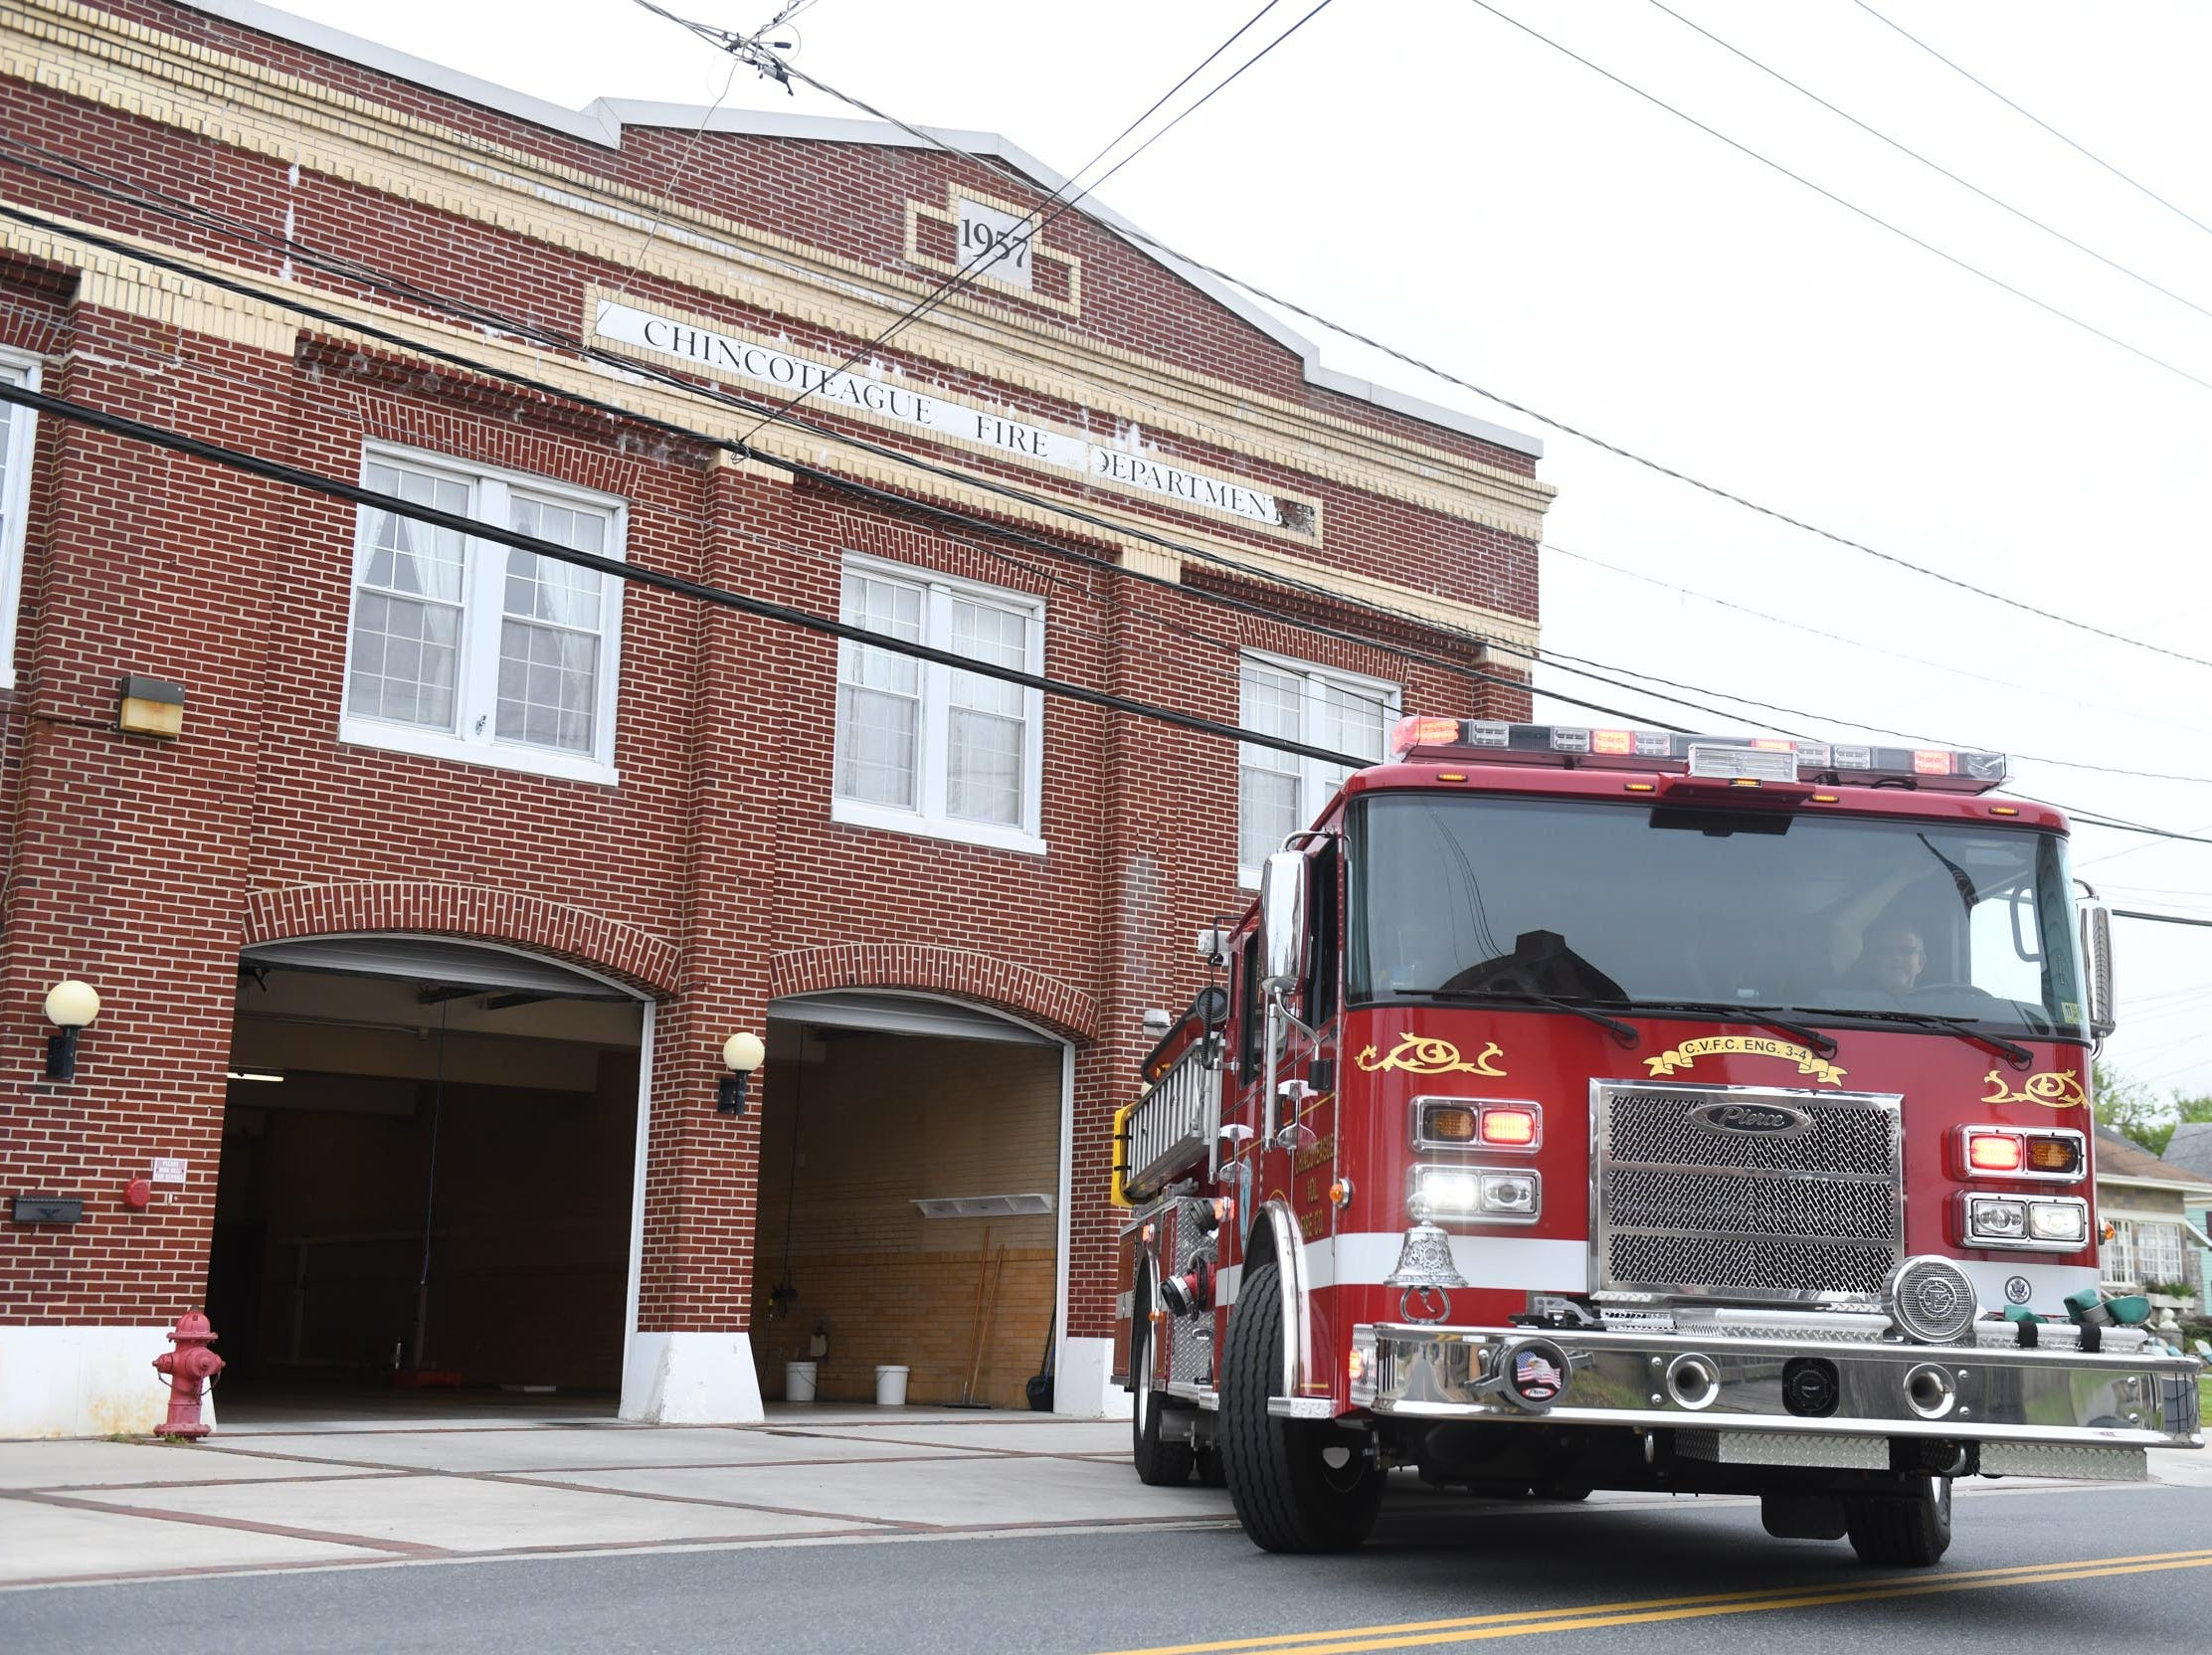 The Chincoteague Volunteer Fire Department drives the fire truck out of the old building for the last time on Wednesday, May 1, 2019.